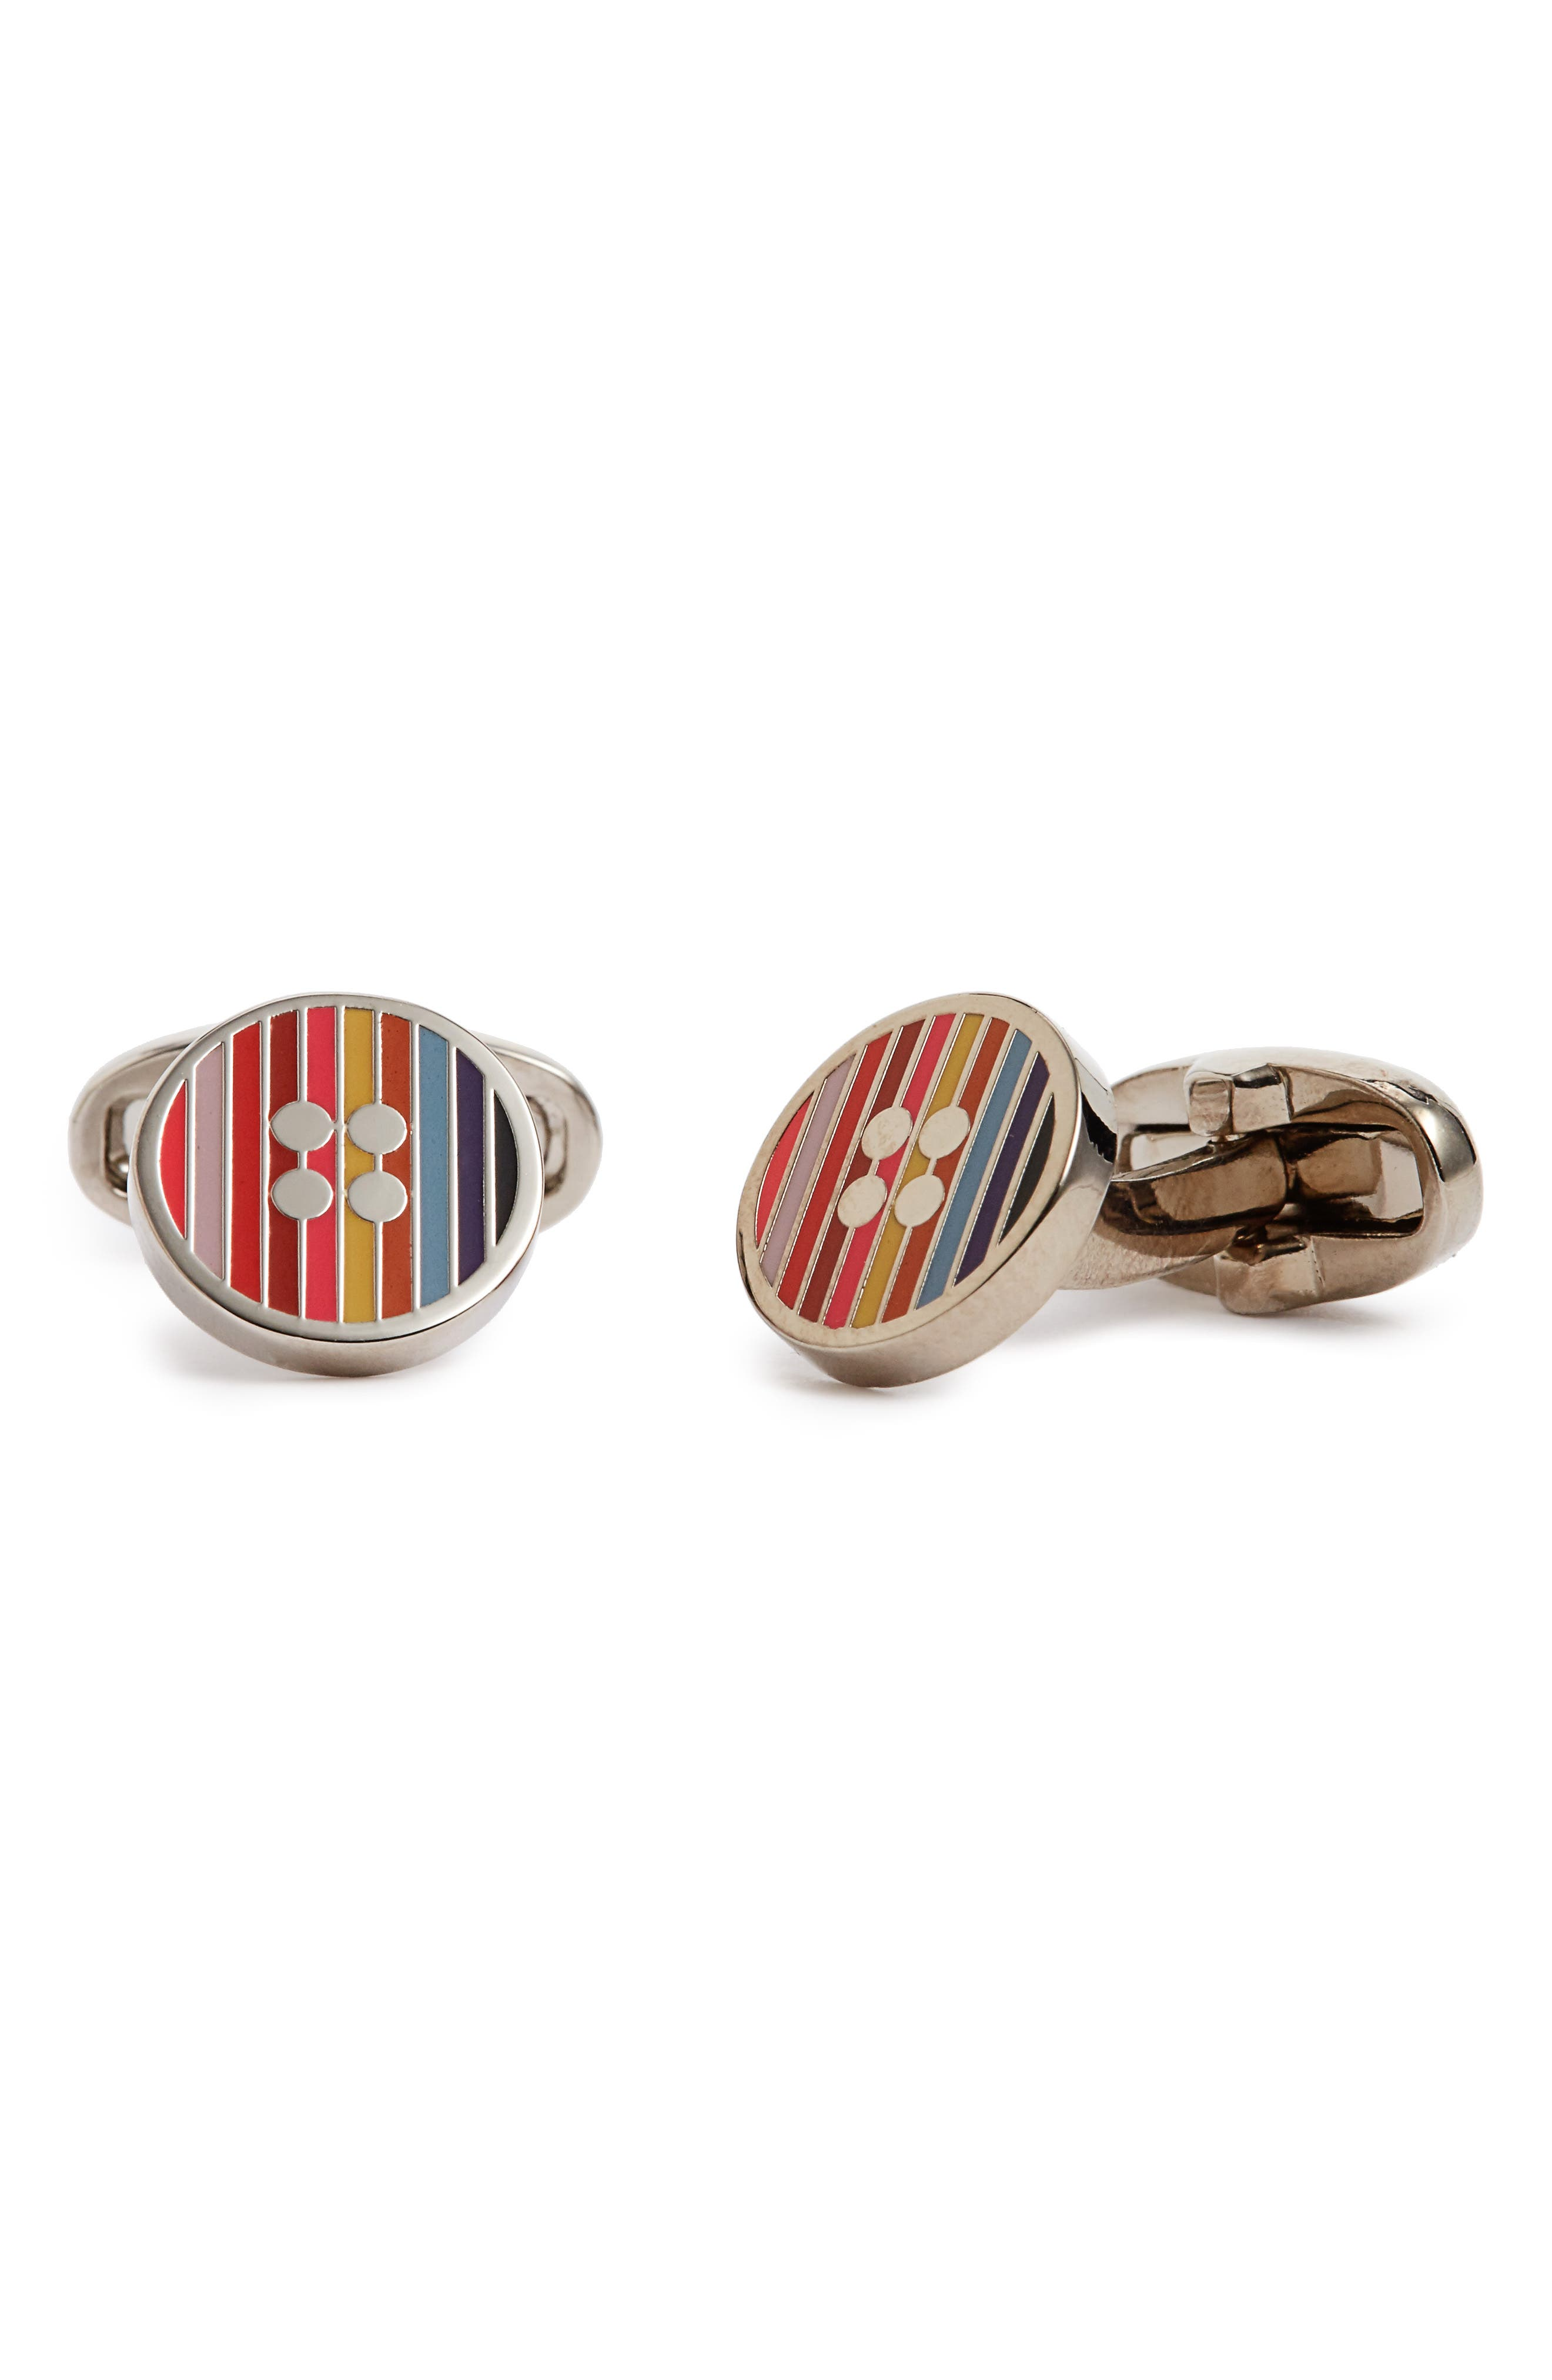 Alternate Image 1 Selected - Paul Smith Stripe Button Cuff Links